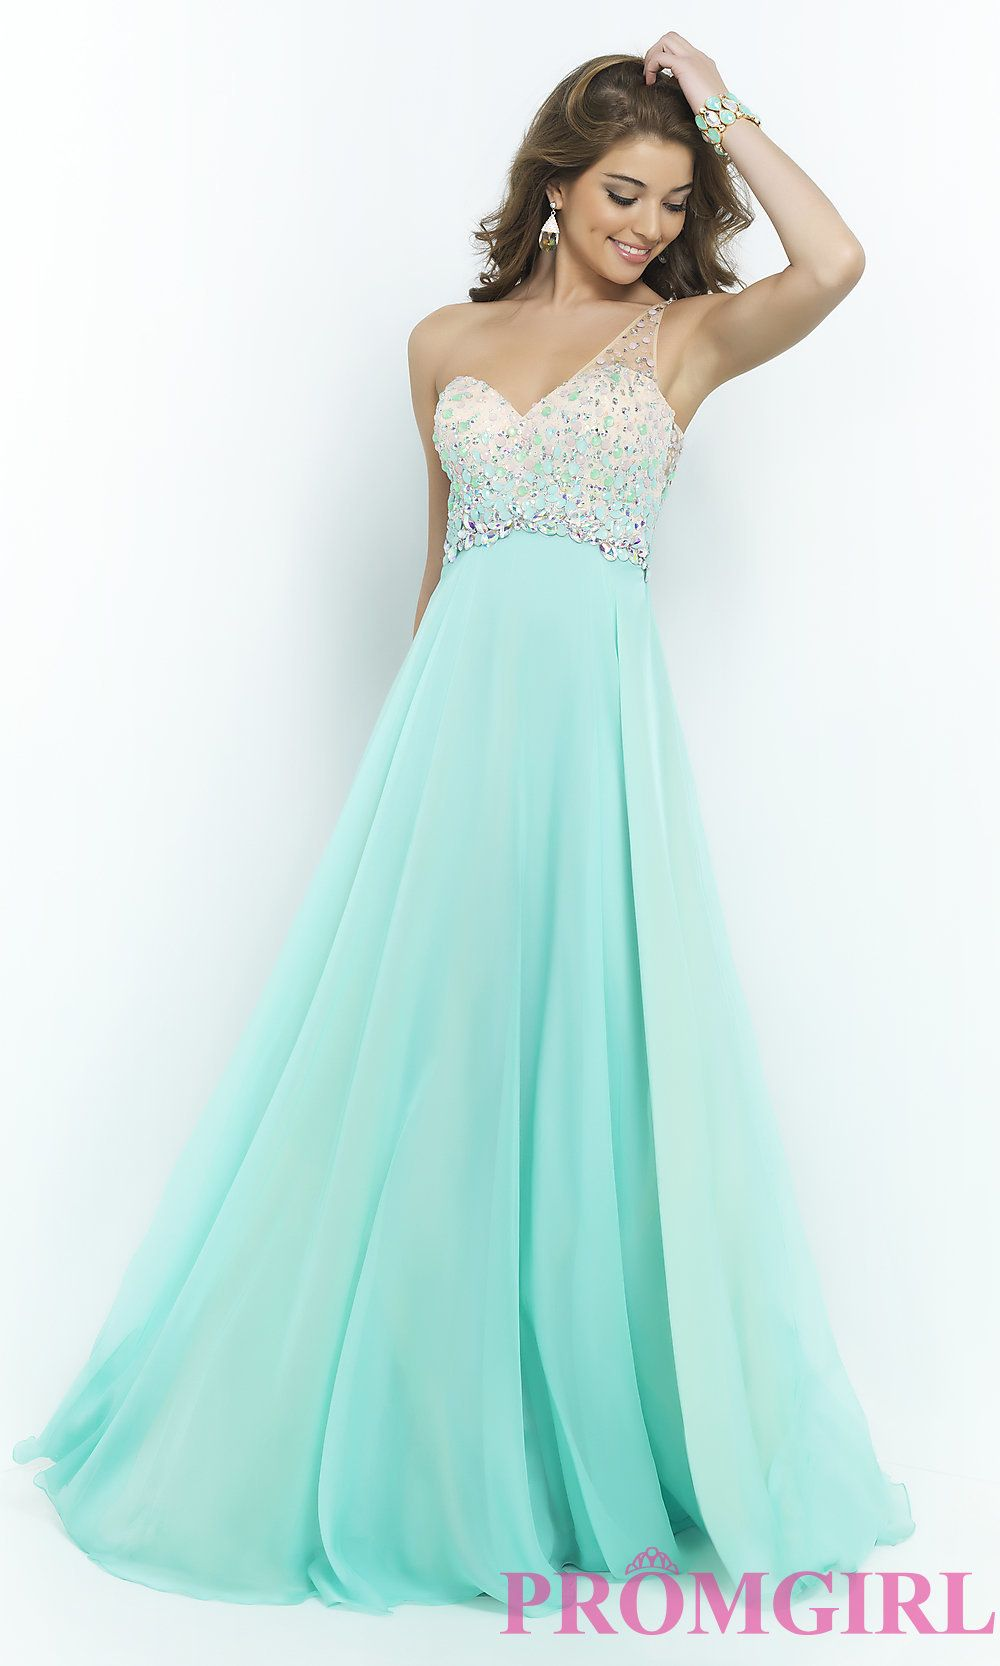 Image of One Shoulder Prom Dress by Blush 9965 Detail Image 3 ...